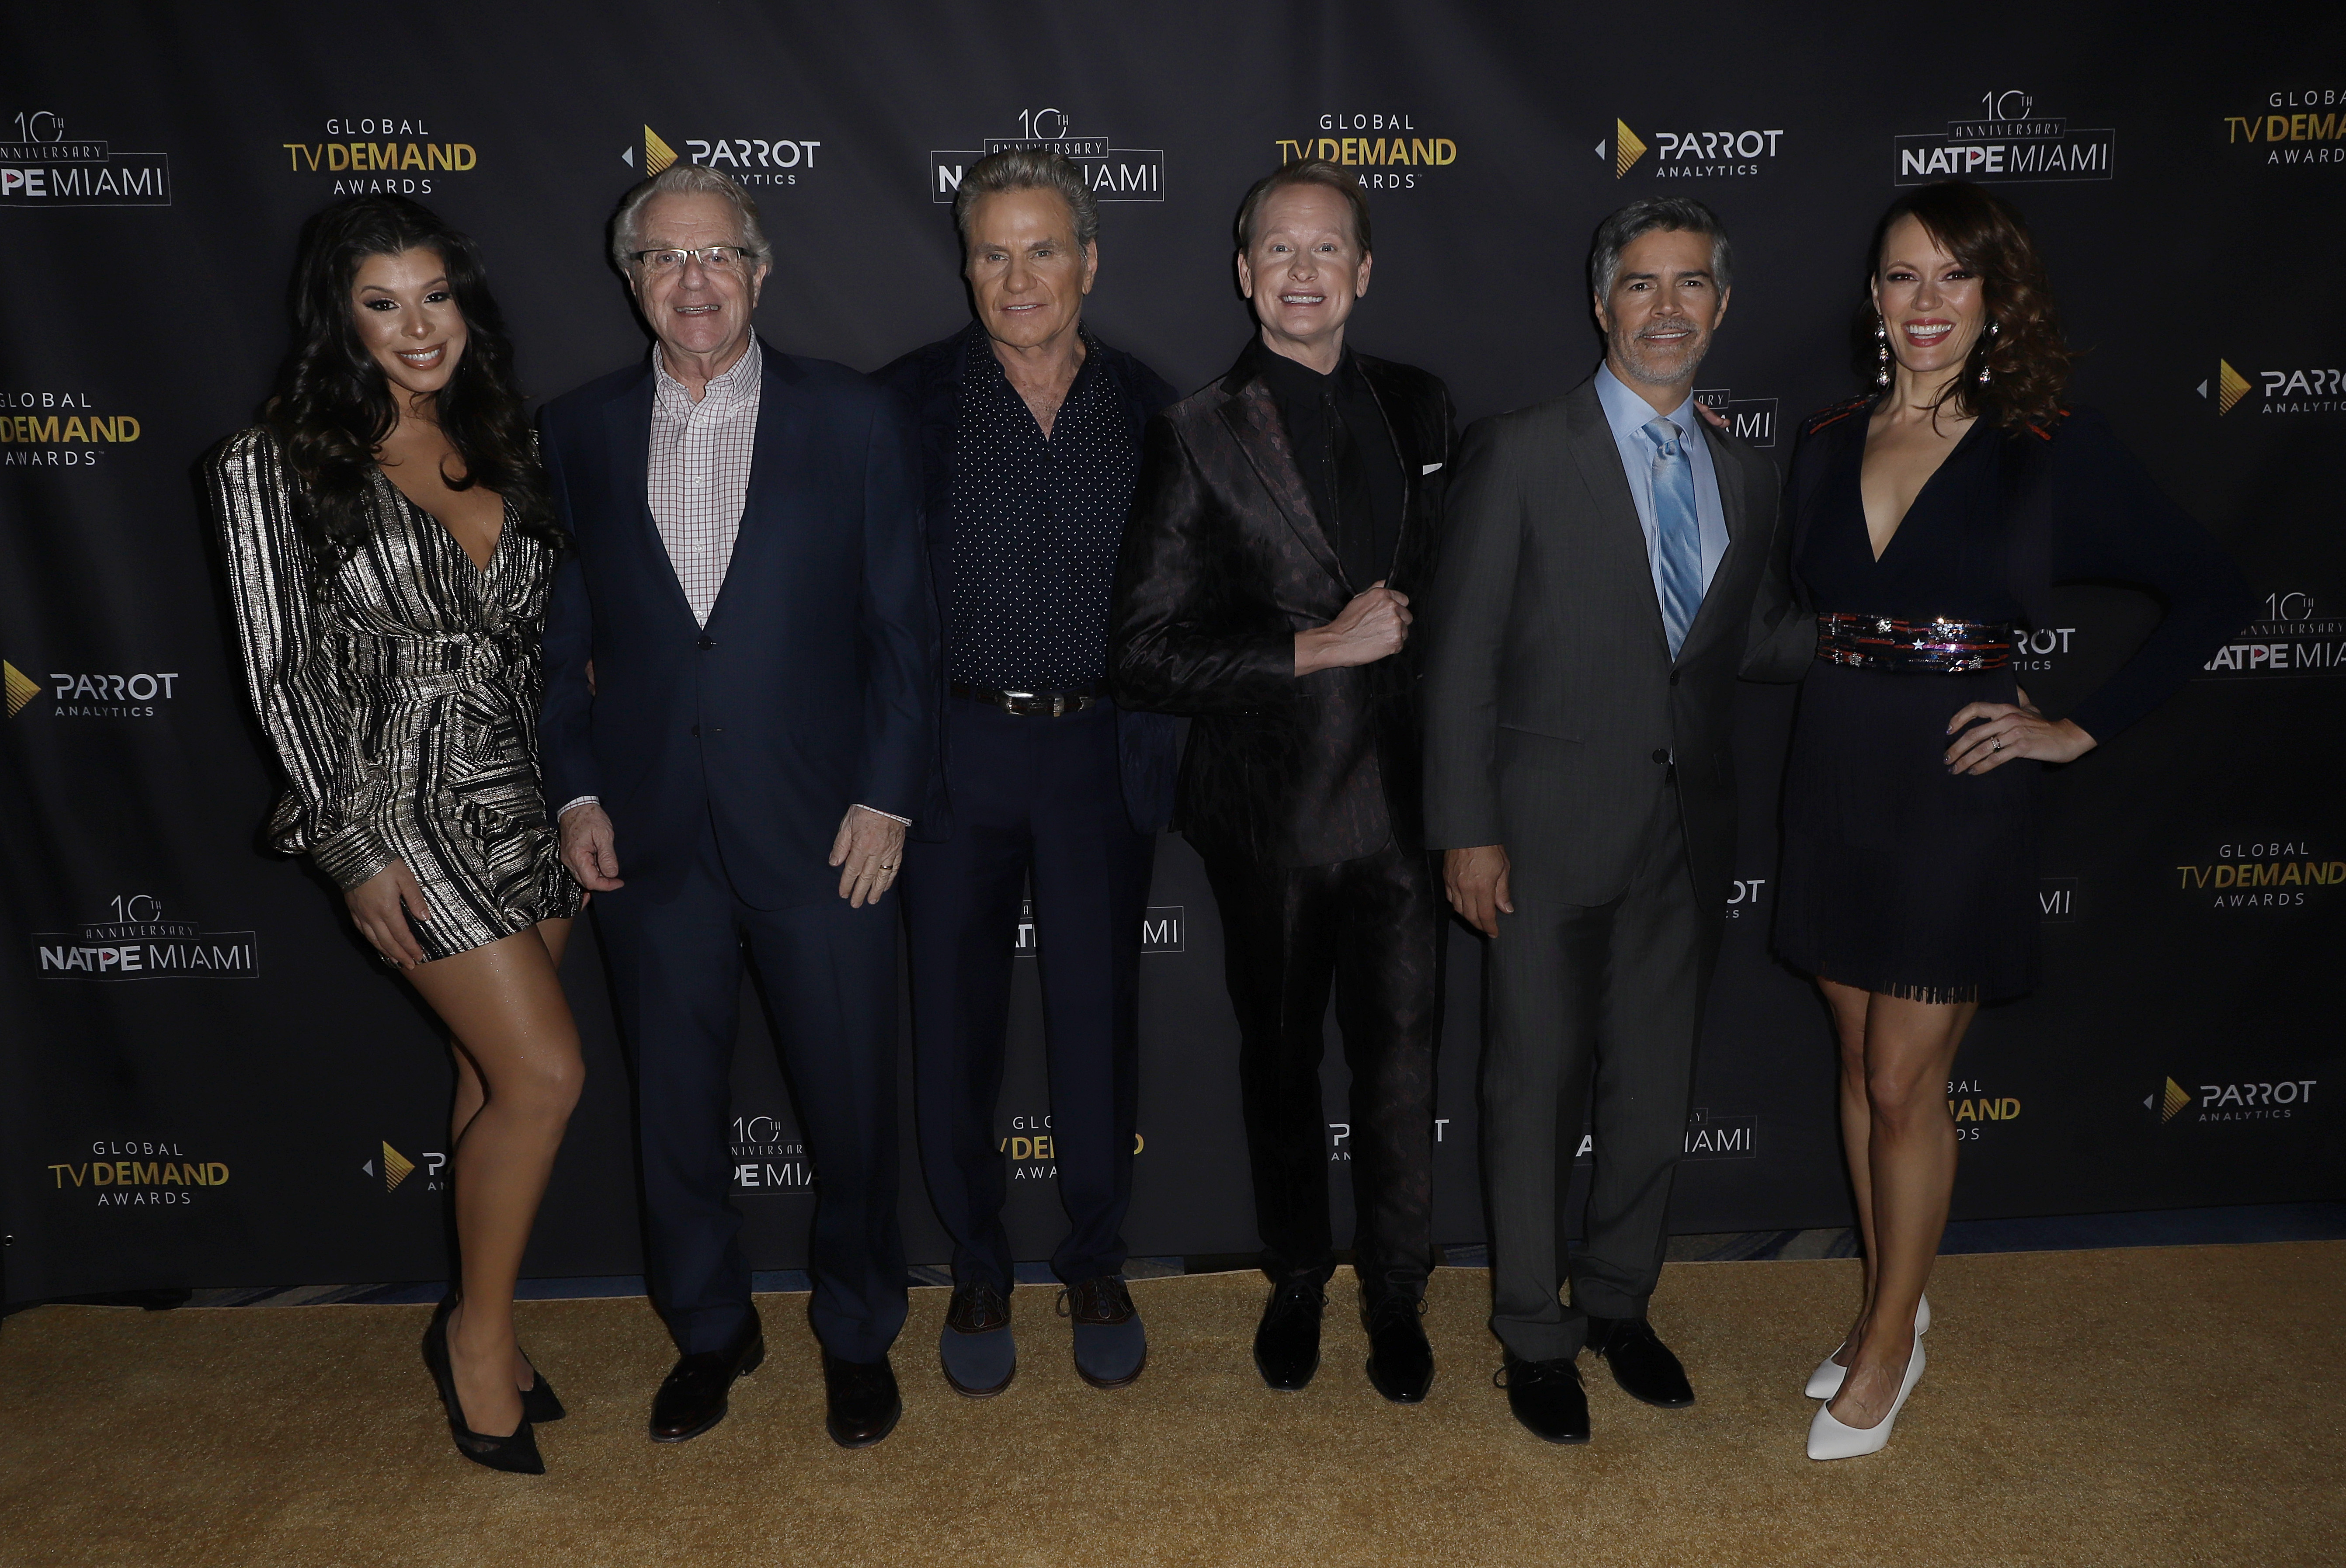 Game of Thrones named the most in-demand TV show in the world for 2019 at Parrot Analytics' 2nd Annual Global TV Demand Awards